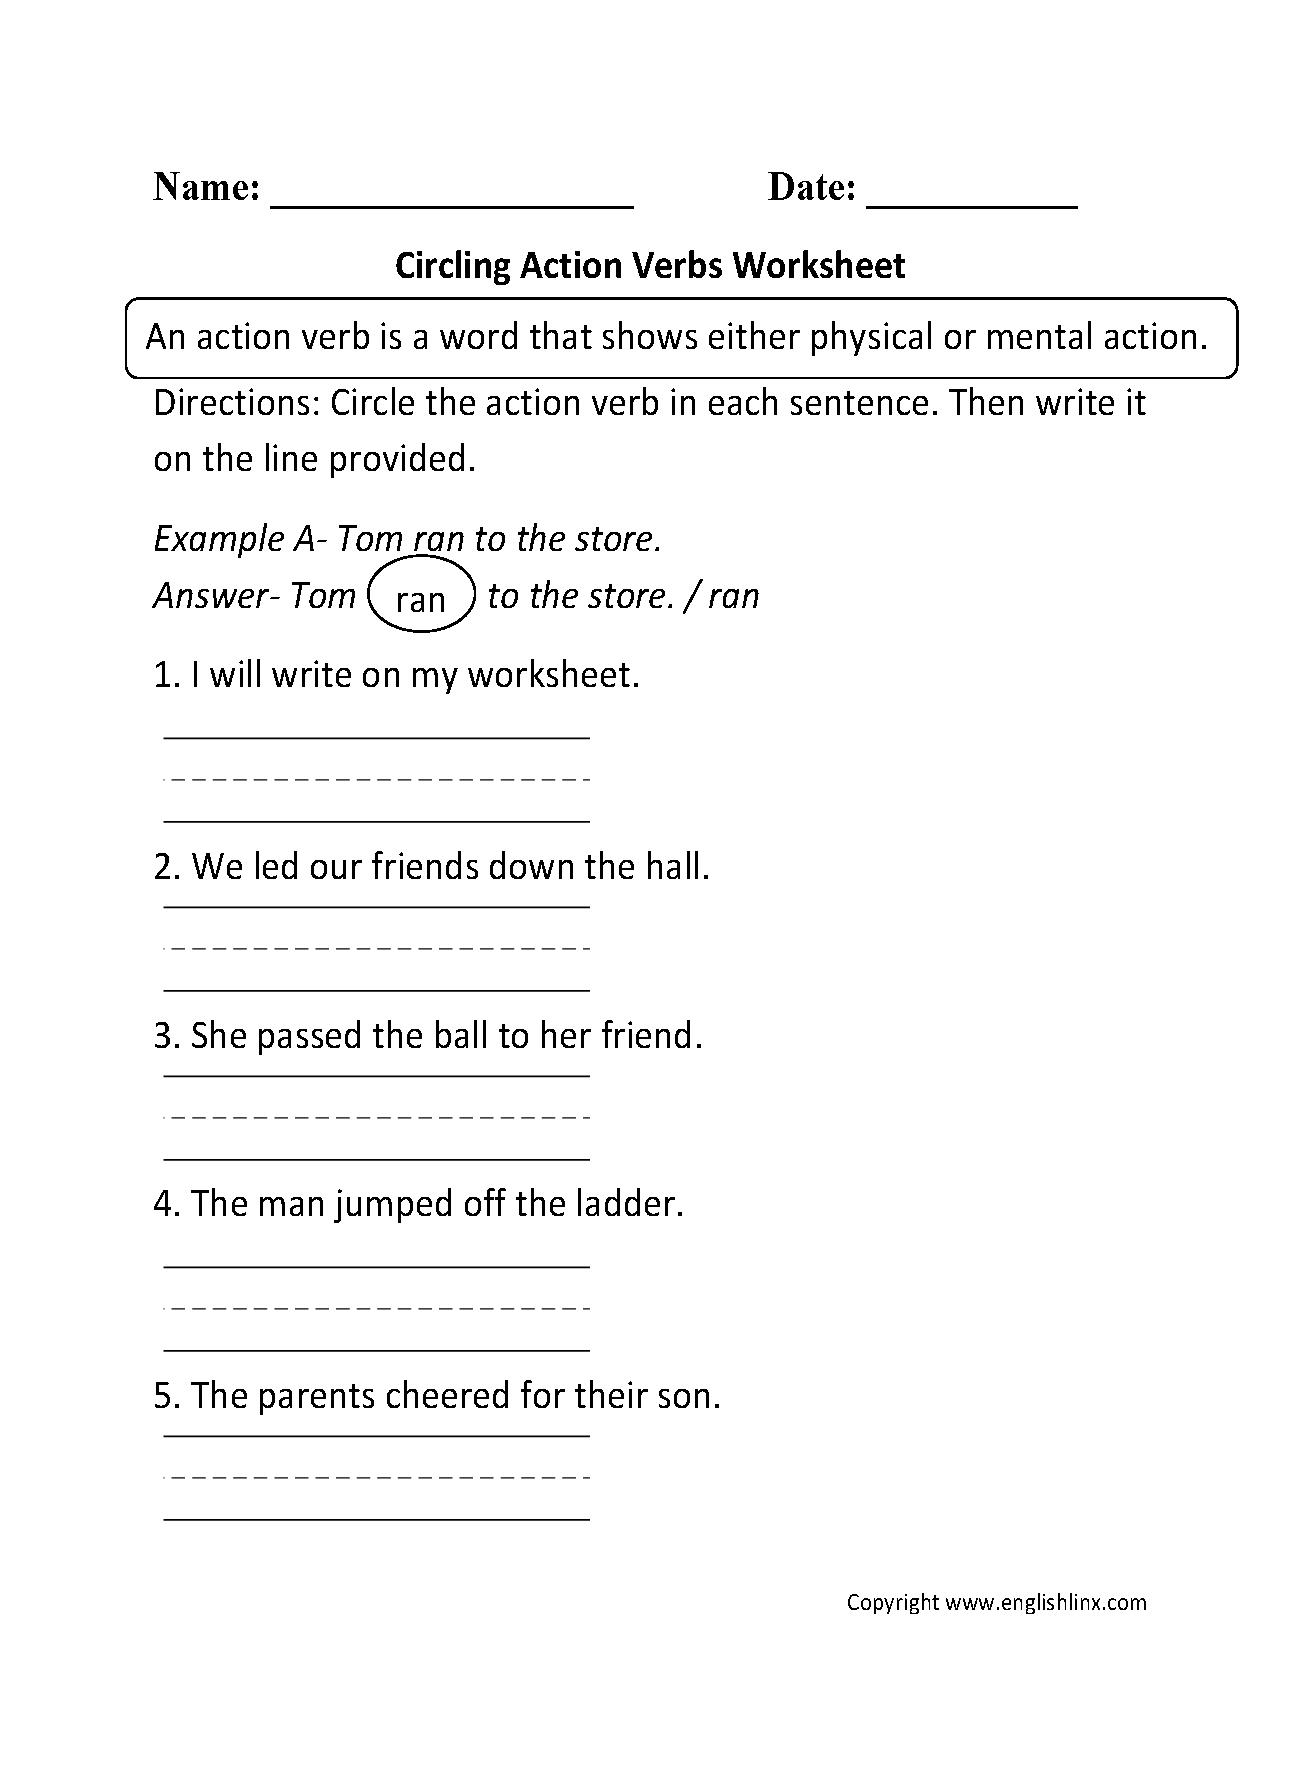 circling action verbs worksheet mrs martinez pinterest action verbs worksheets and action. Black Bedroom Furniture Sets. Home Design Ideas